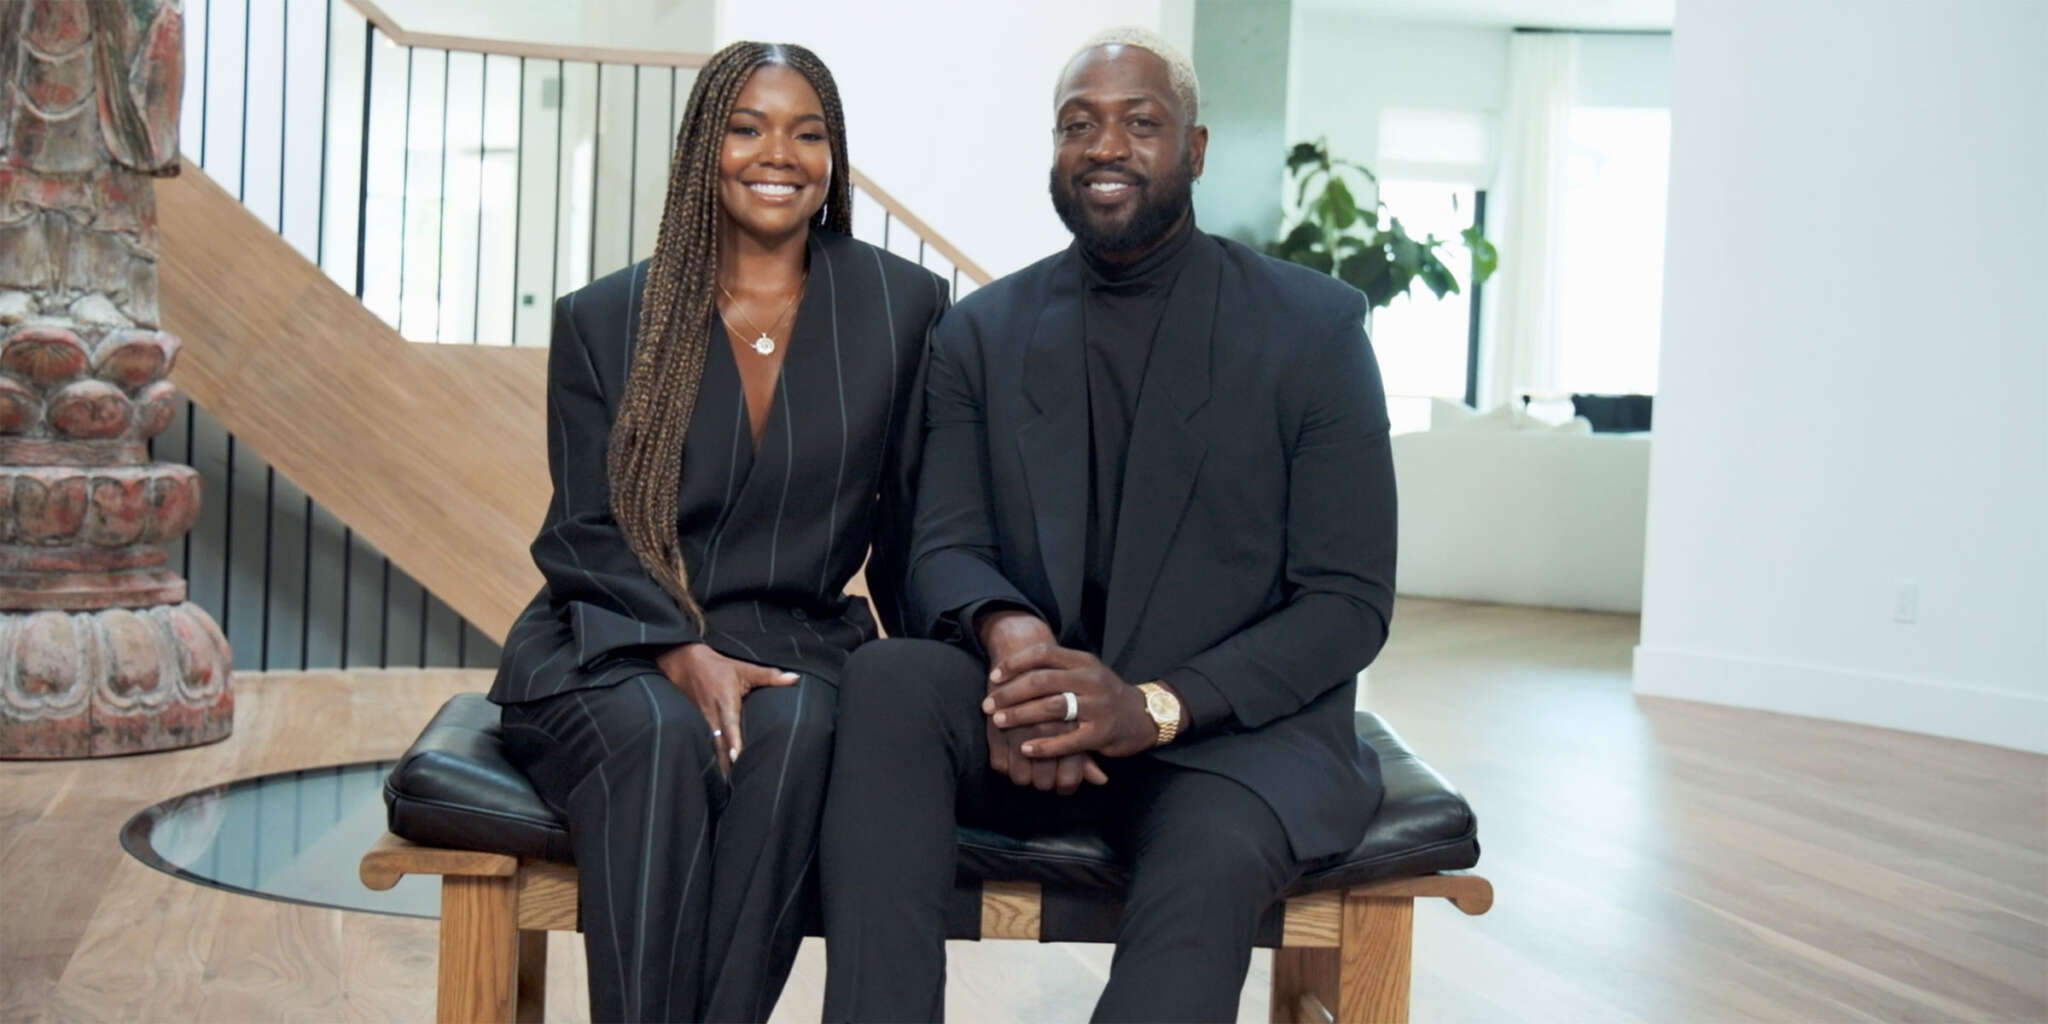 Gabrielle Union Has The Best Time With Dwyane Wade At The Beach – See Their Video Together